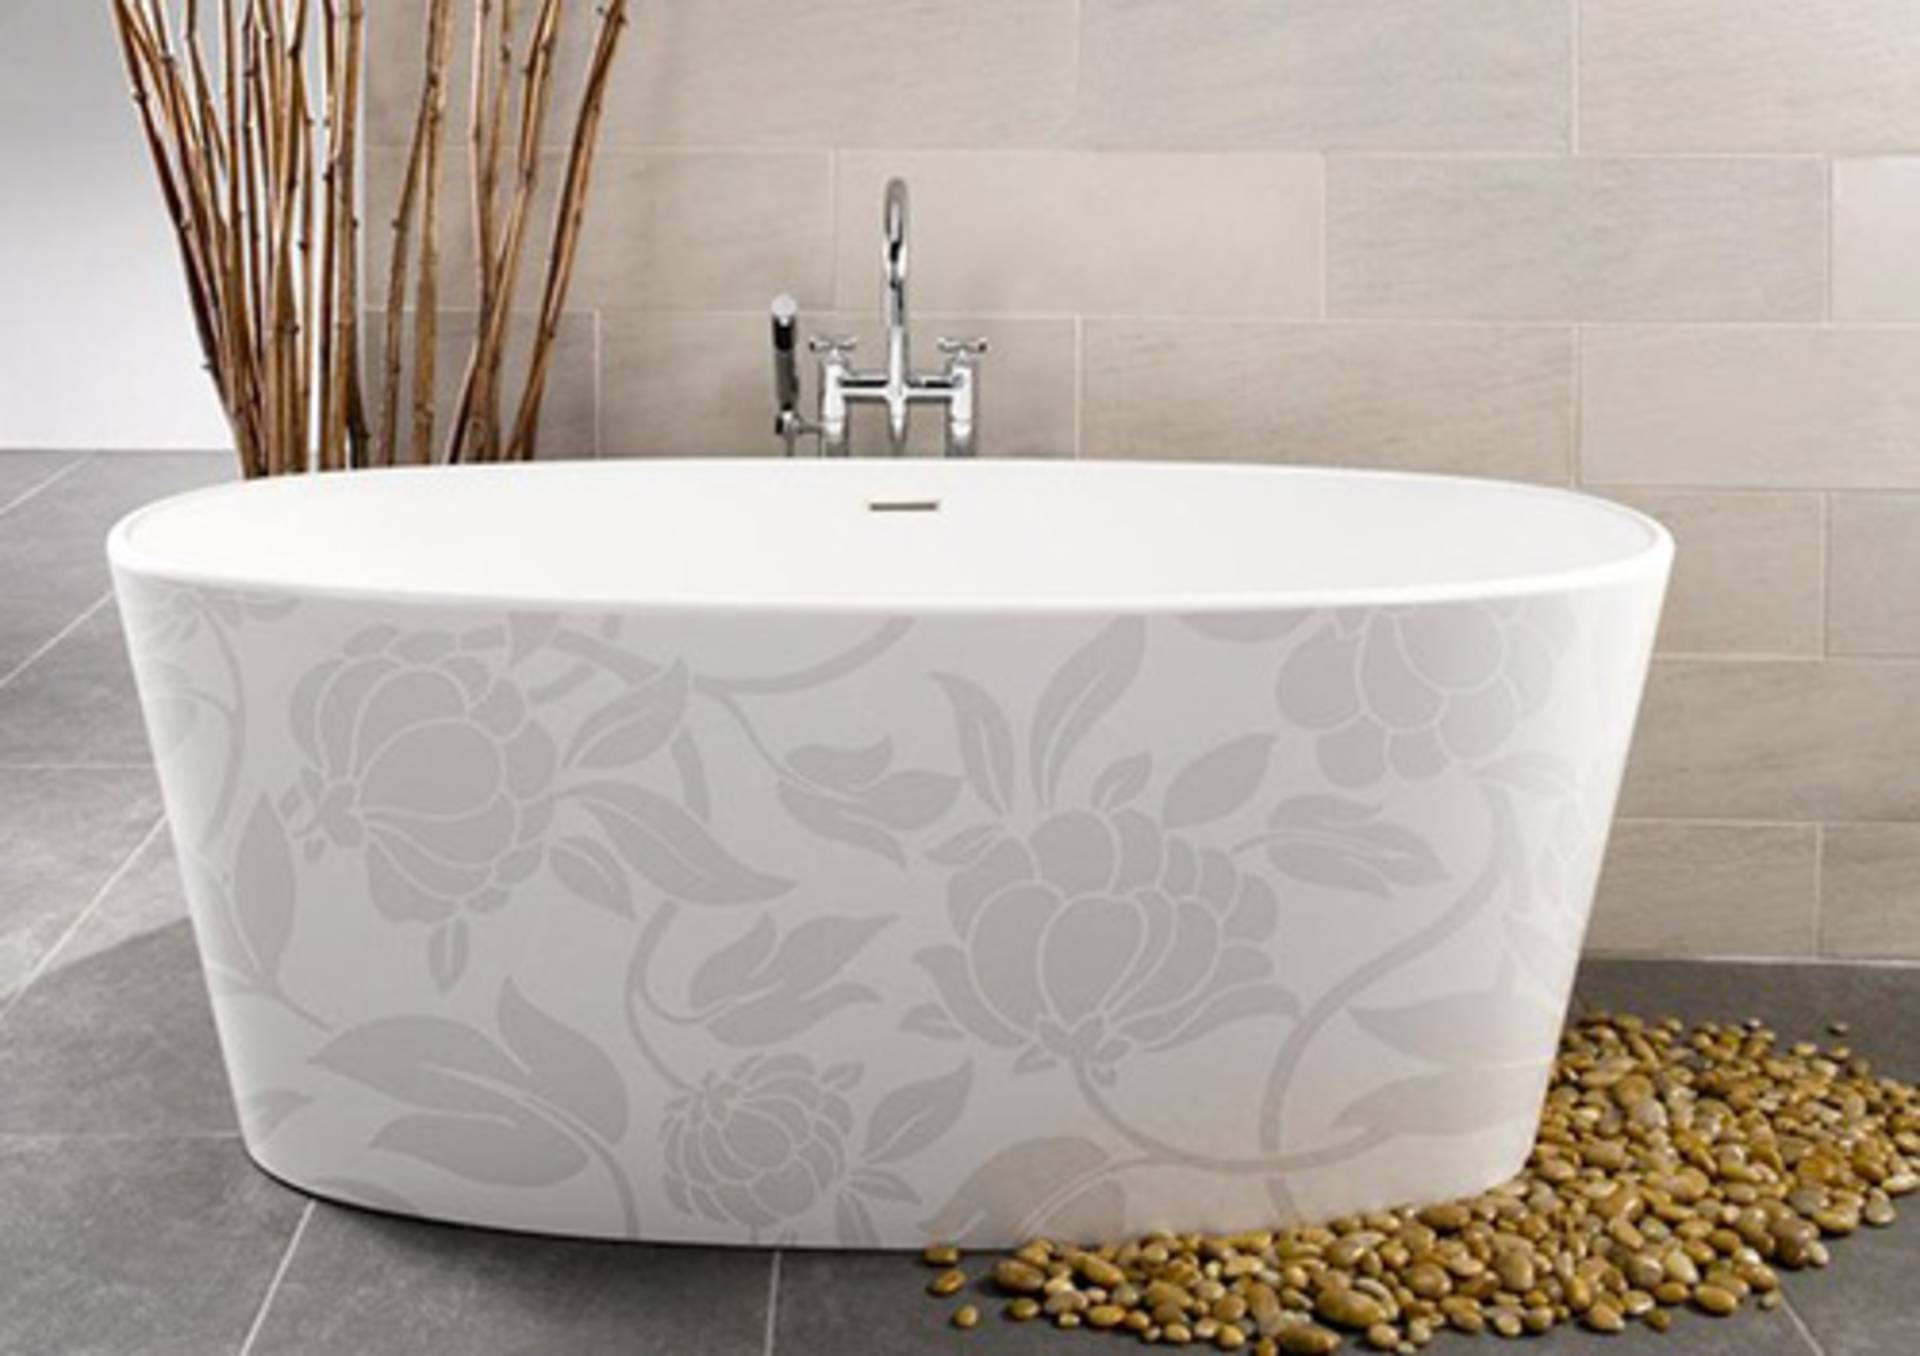 Luxury Image In Motif Bathtub Collection By WetStyle